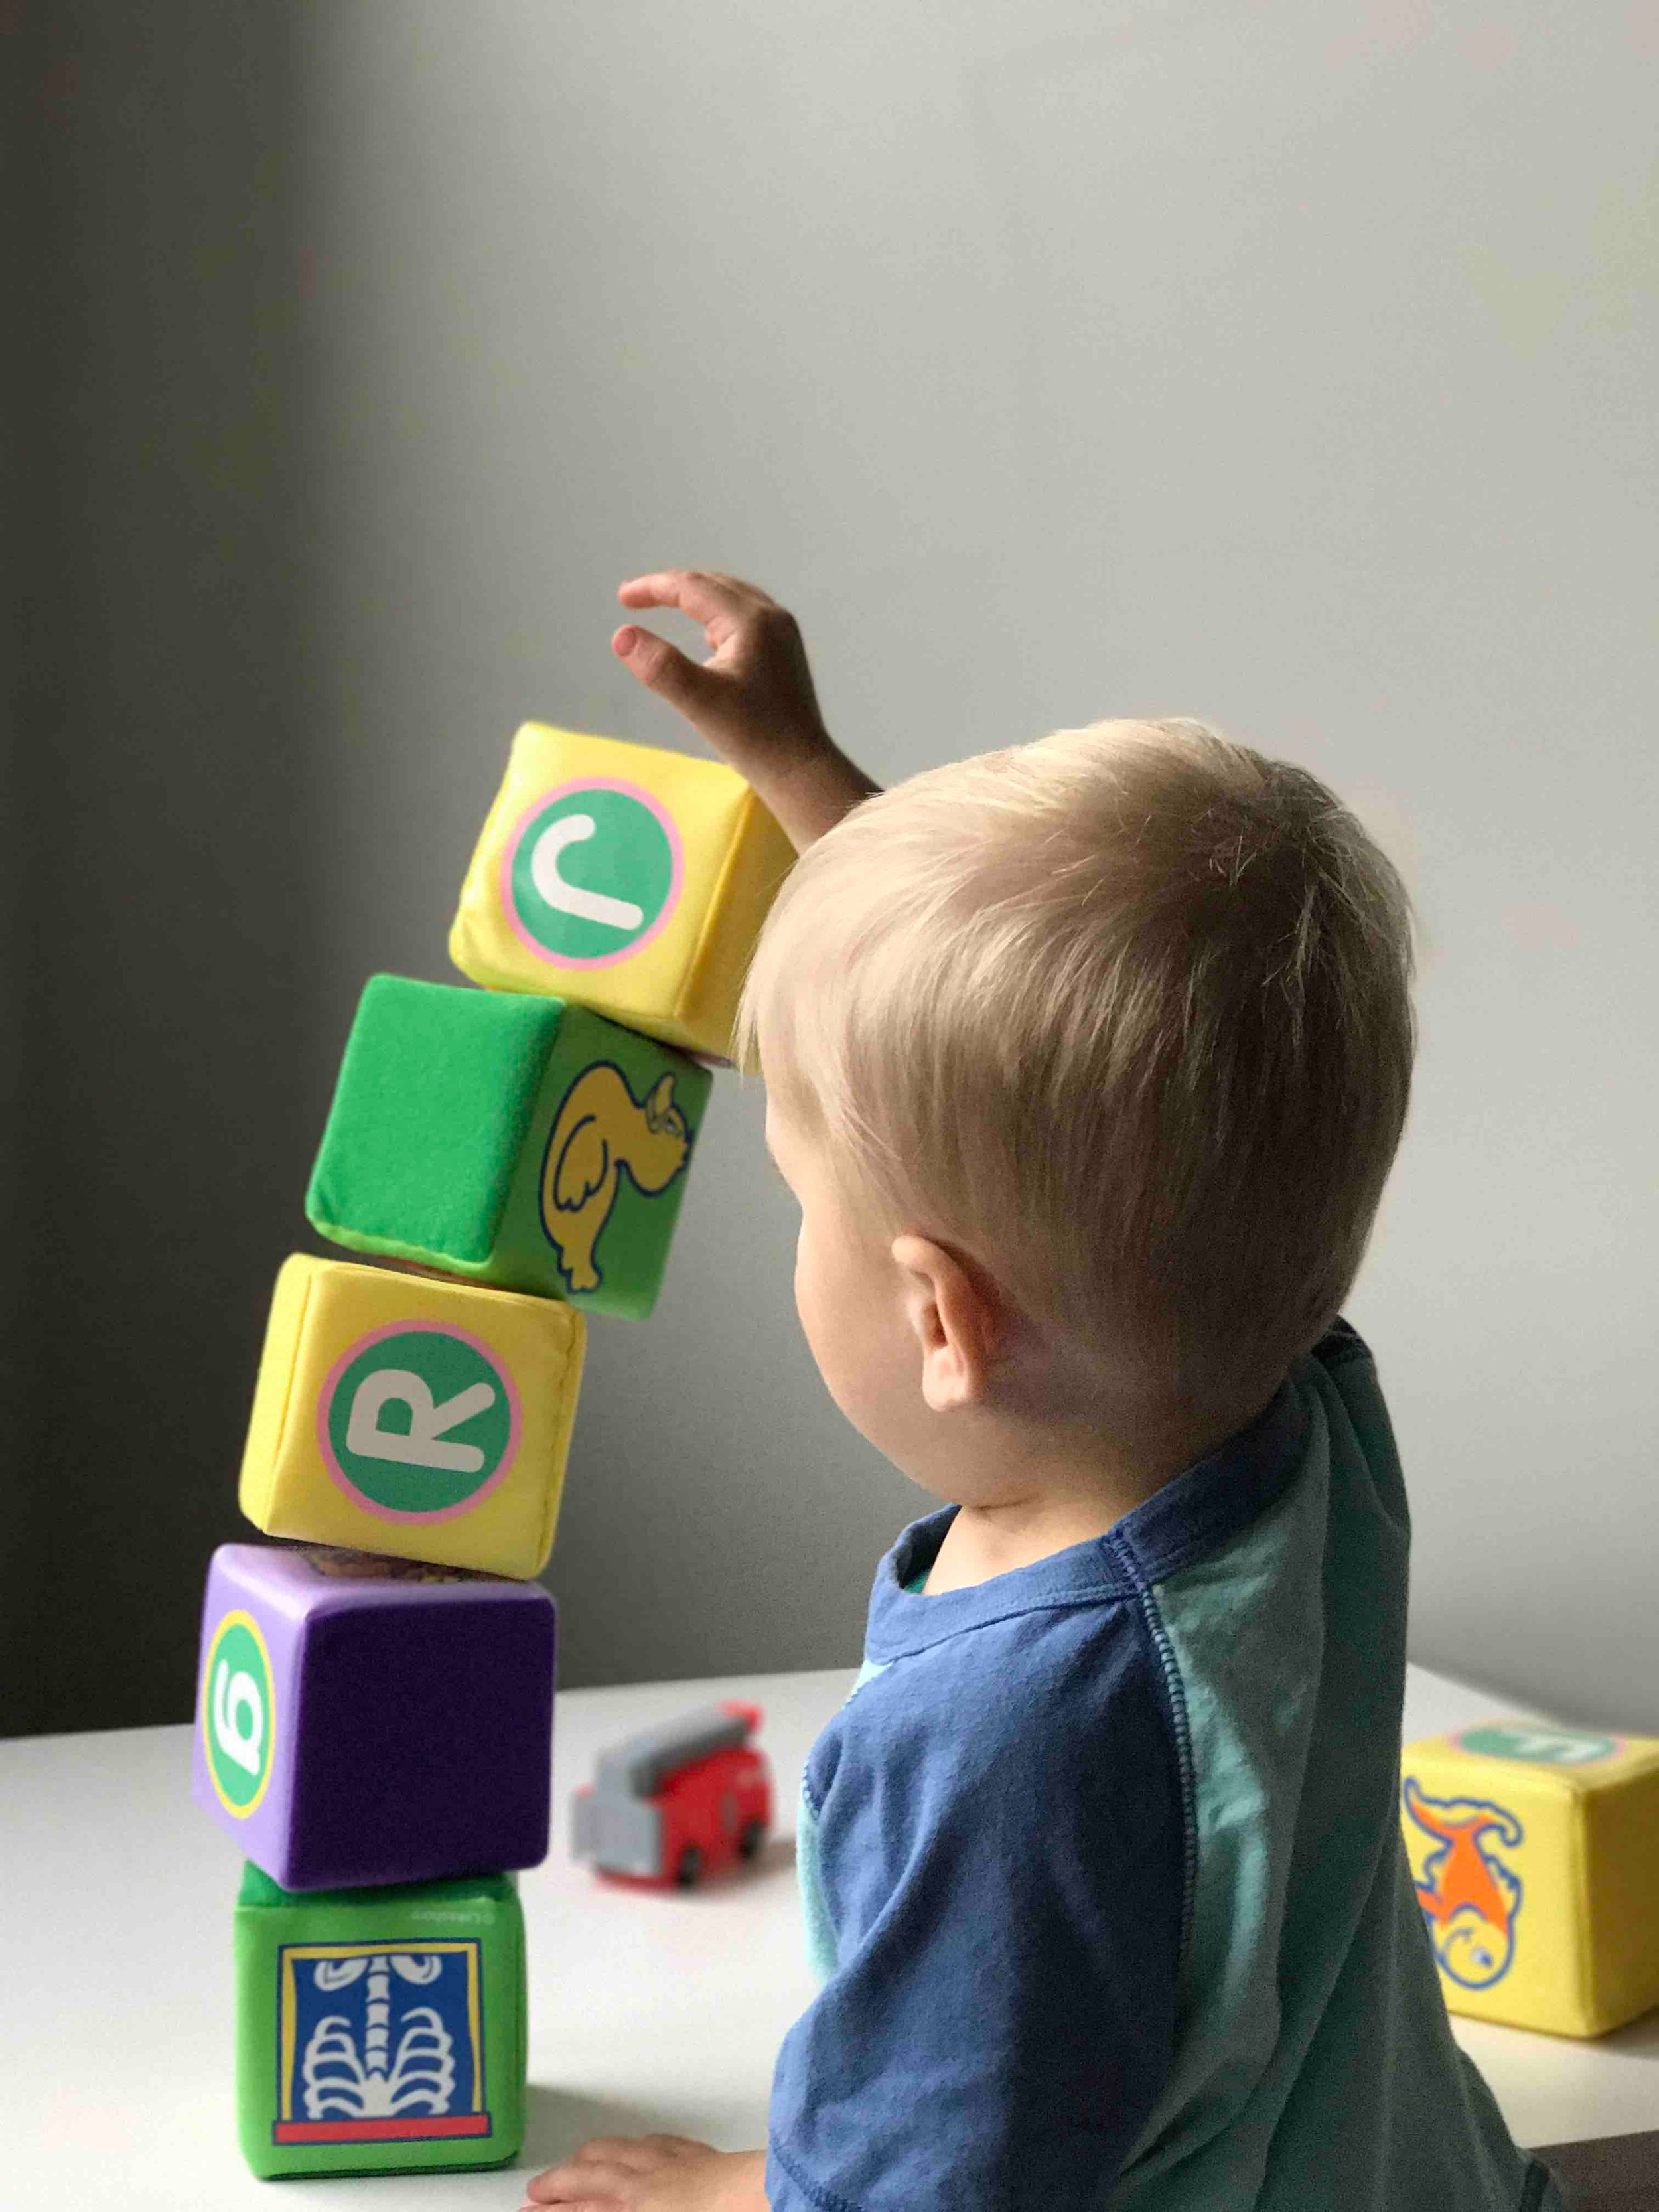 At 2 years old, most children are able to build towers of four or more blocks. This is one of many milestones your primary care provider will consider to determine how healthily your child is developing (  Ryan Fields   /   Unsplash  )